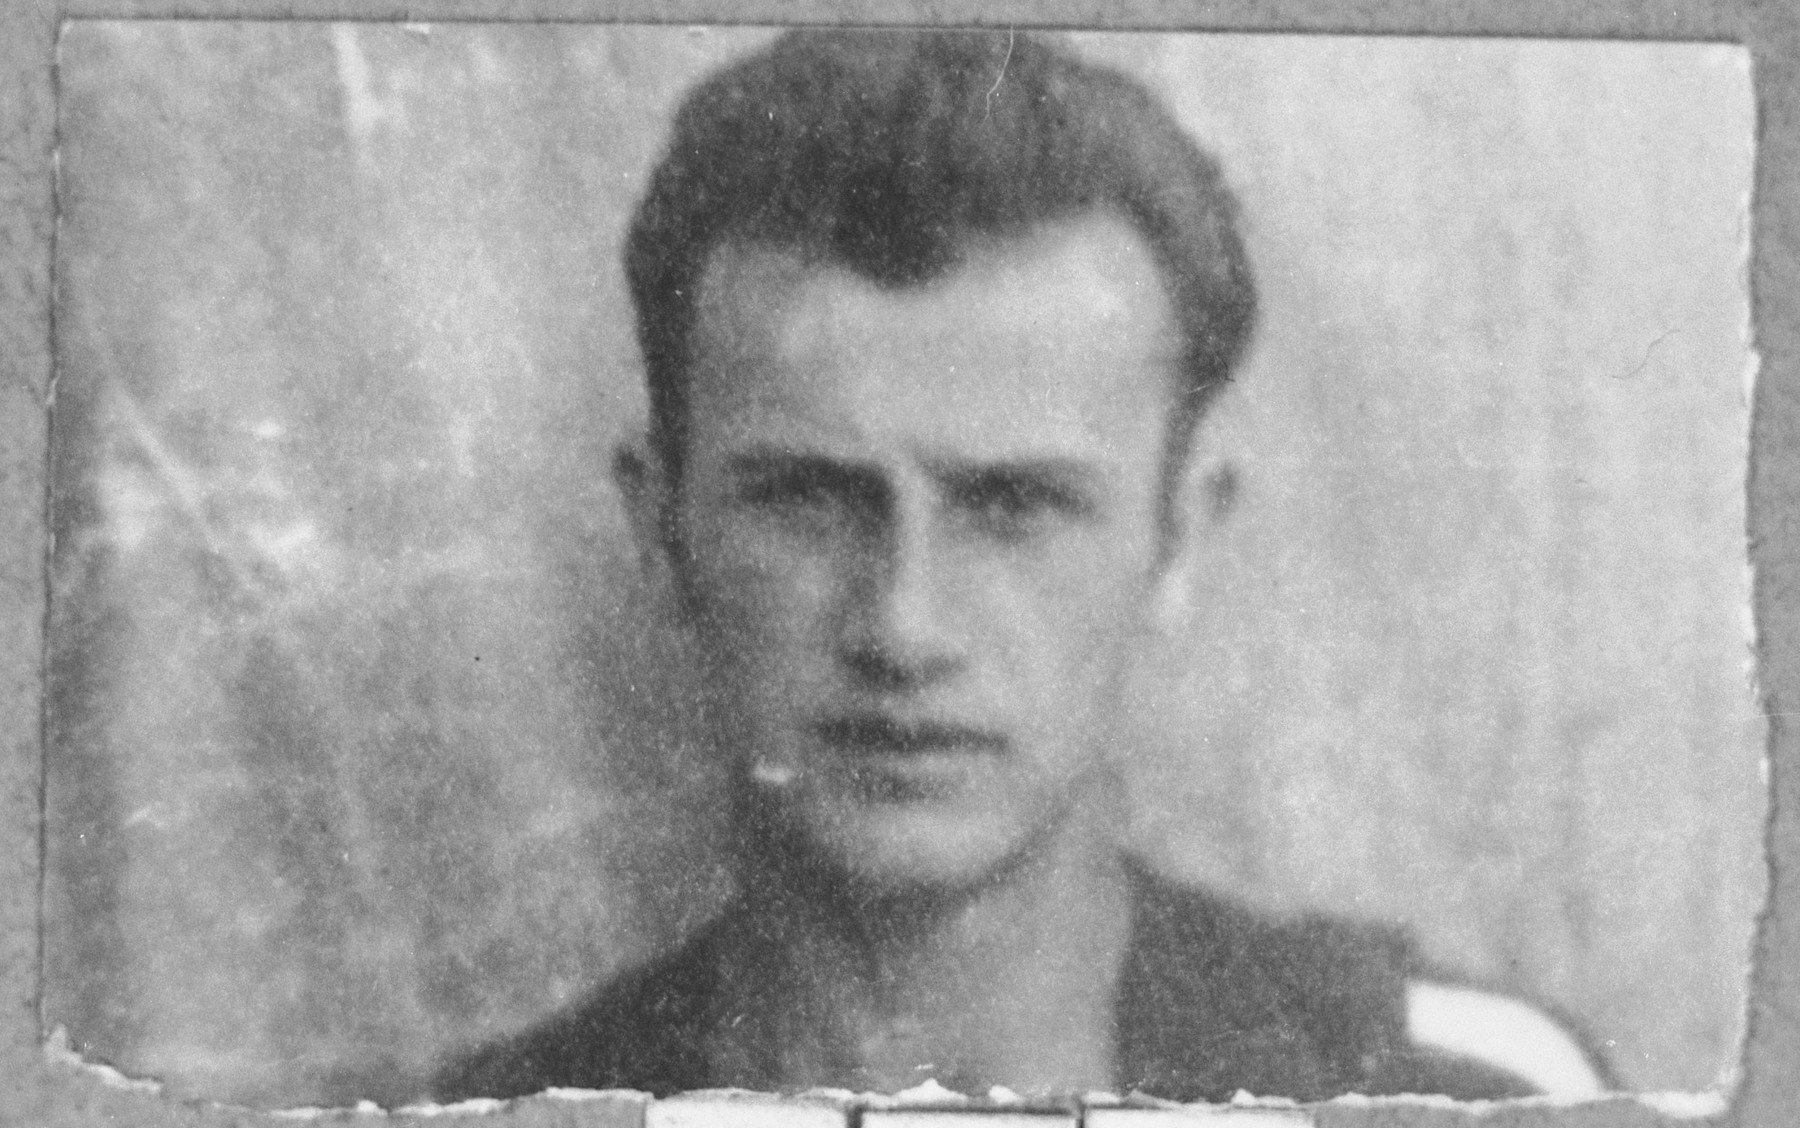 Portrait of Gabriel Levi, son of Todoros Levi.  He was a student.  He lived at Drinska 111 in Bitola.